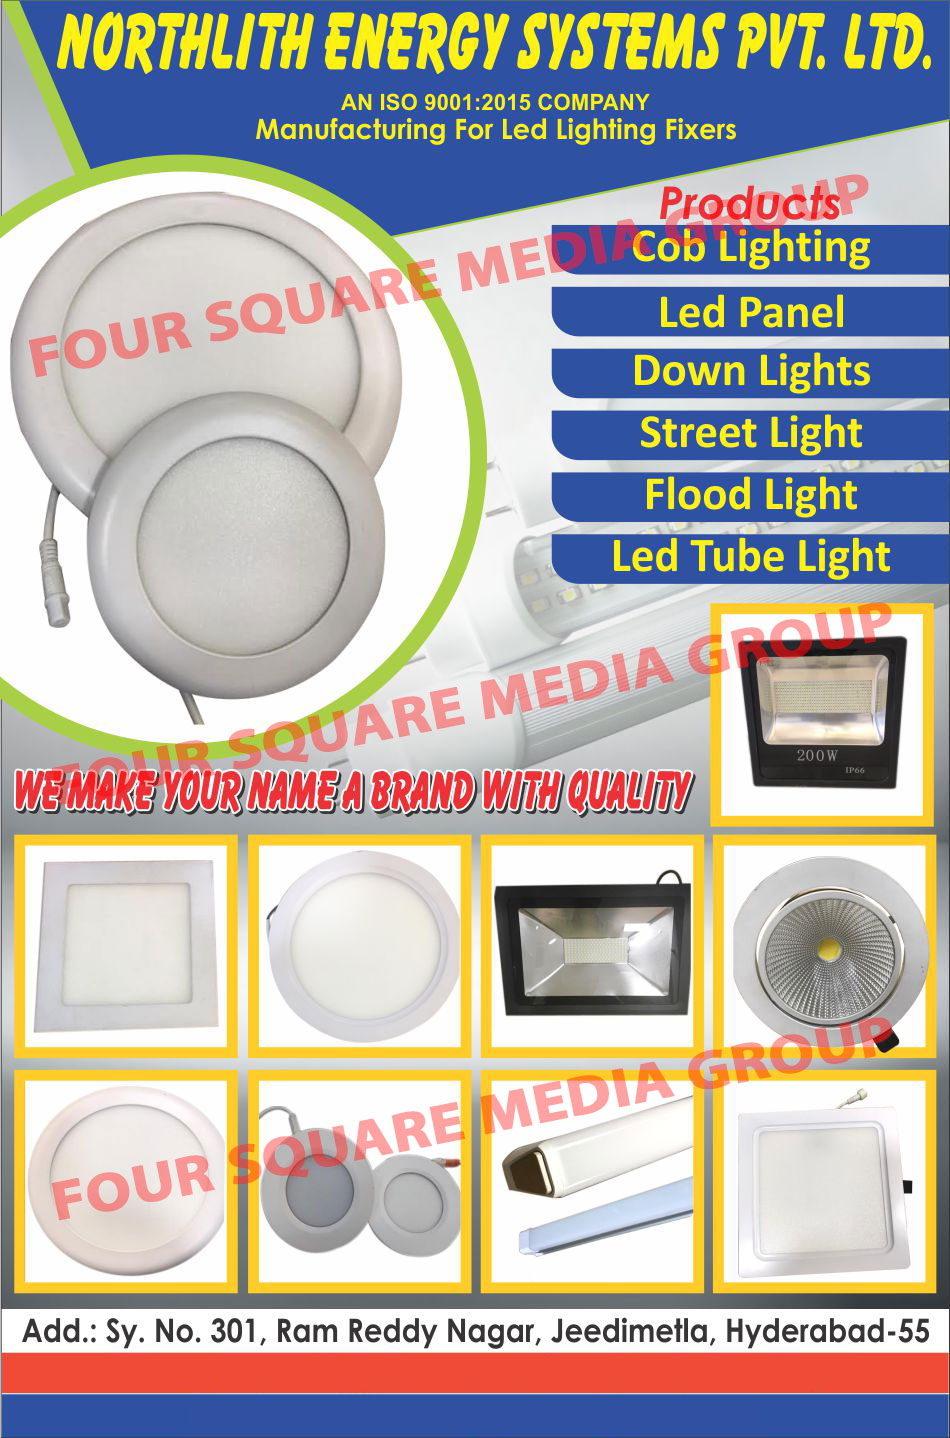 Led Light Fixtures, Led Lights, COB Lights, Led Panels, Led Panel Lights, Led Down Lights, Led Street Lights, Led Flood Lights, Led Tube Lights